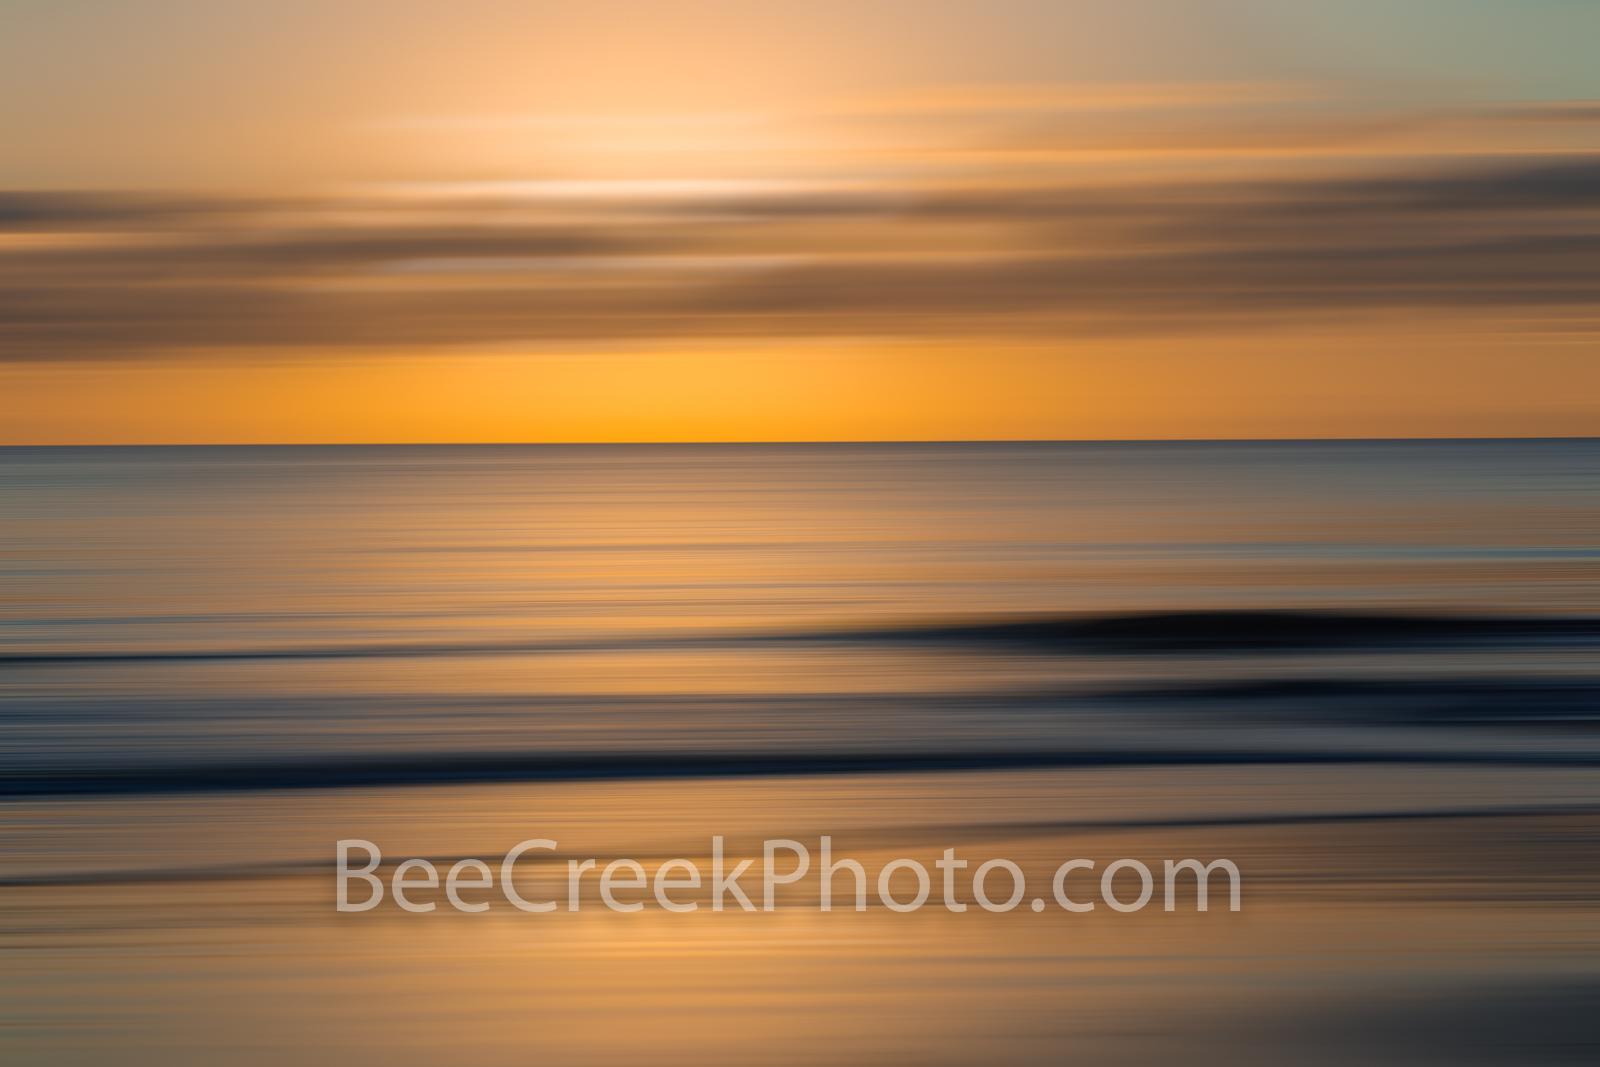 Golden Glow Sunrise Abstract - As the sunrises over the ocean waves we create this digital abstract with a surreal style. Using...